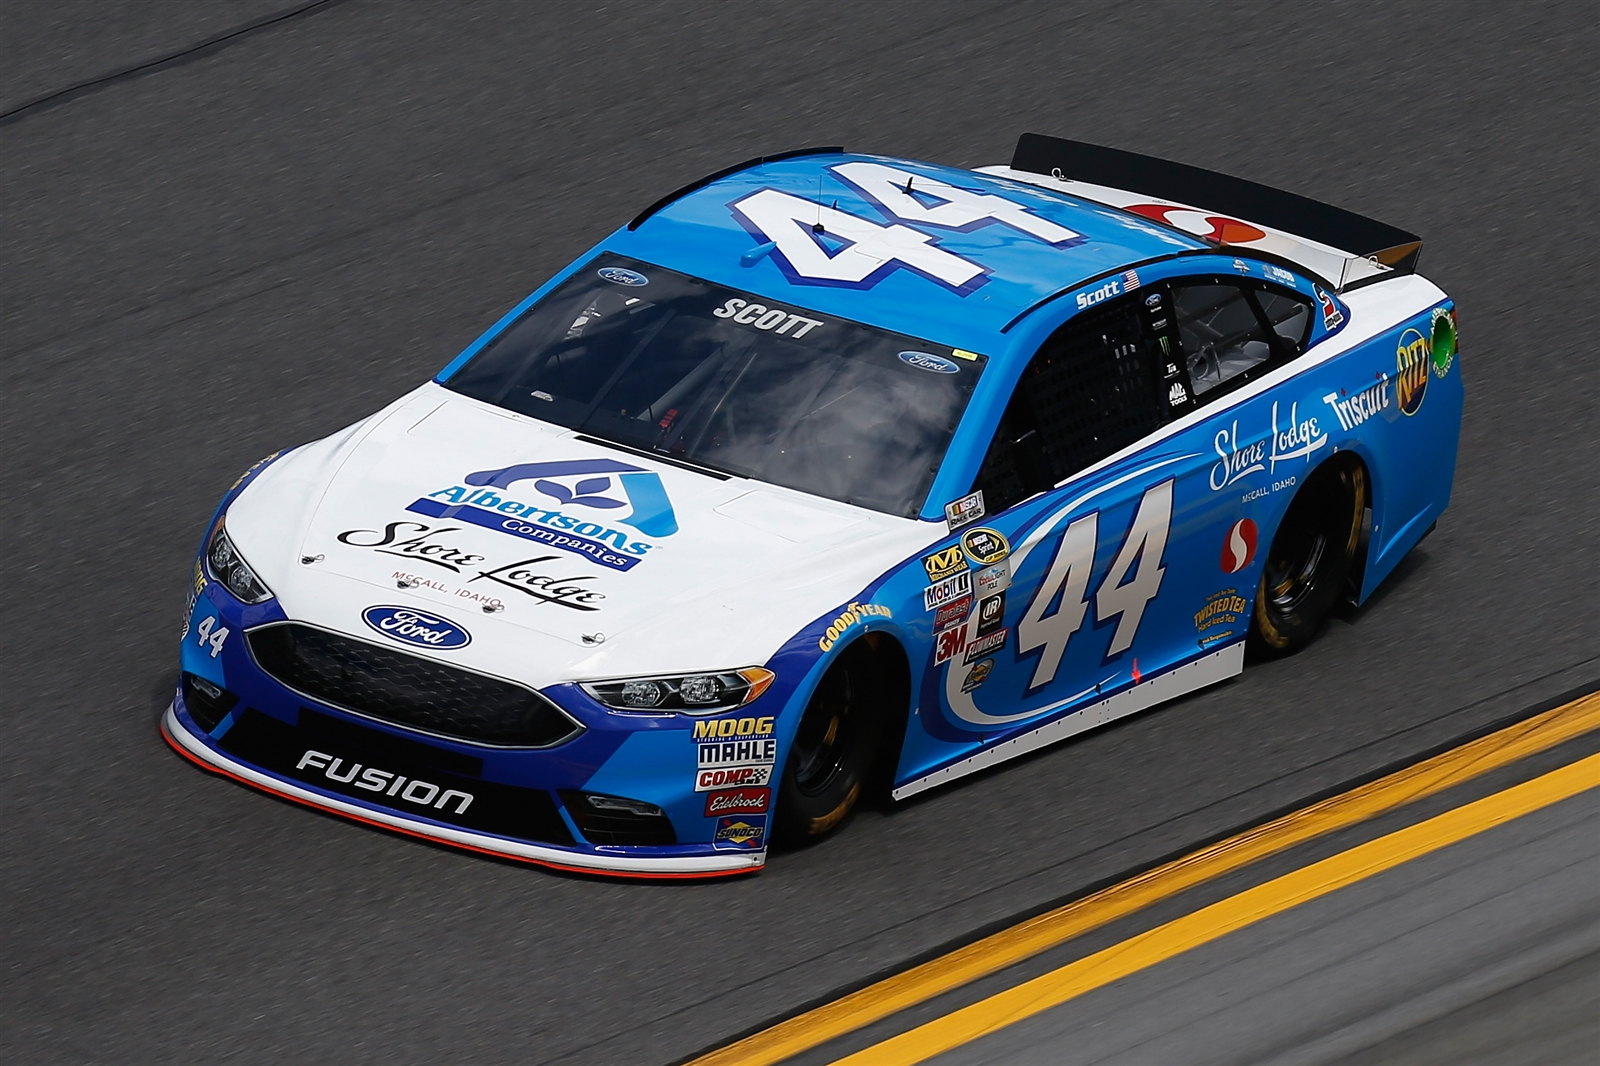 Official Site Of Nascar: Starting Lineup For Daytona 500